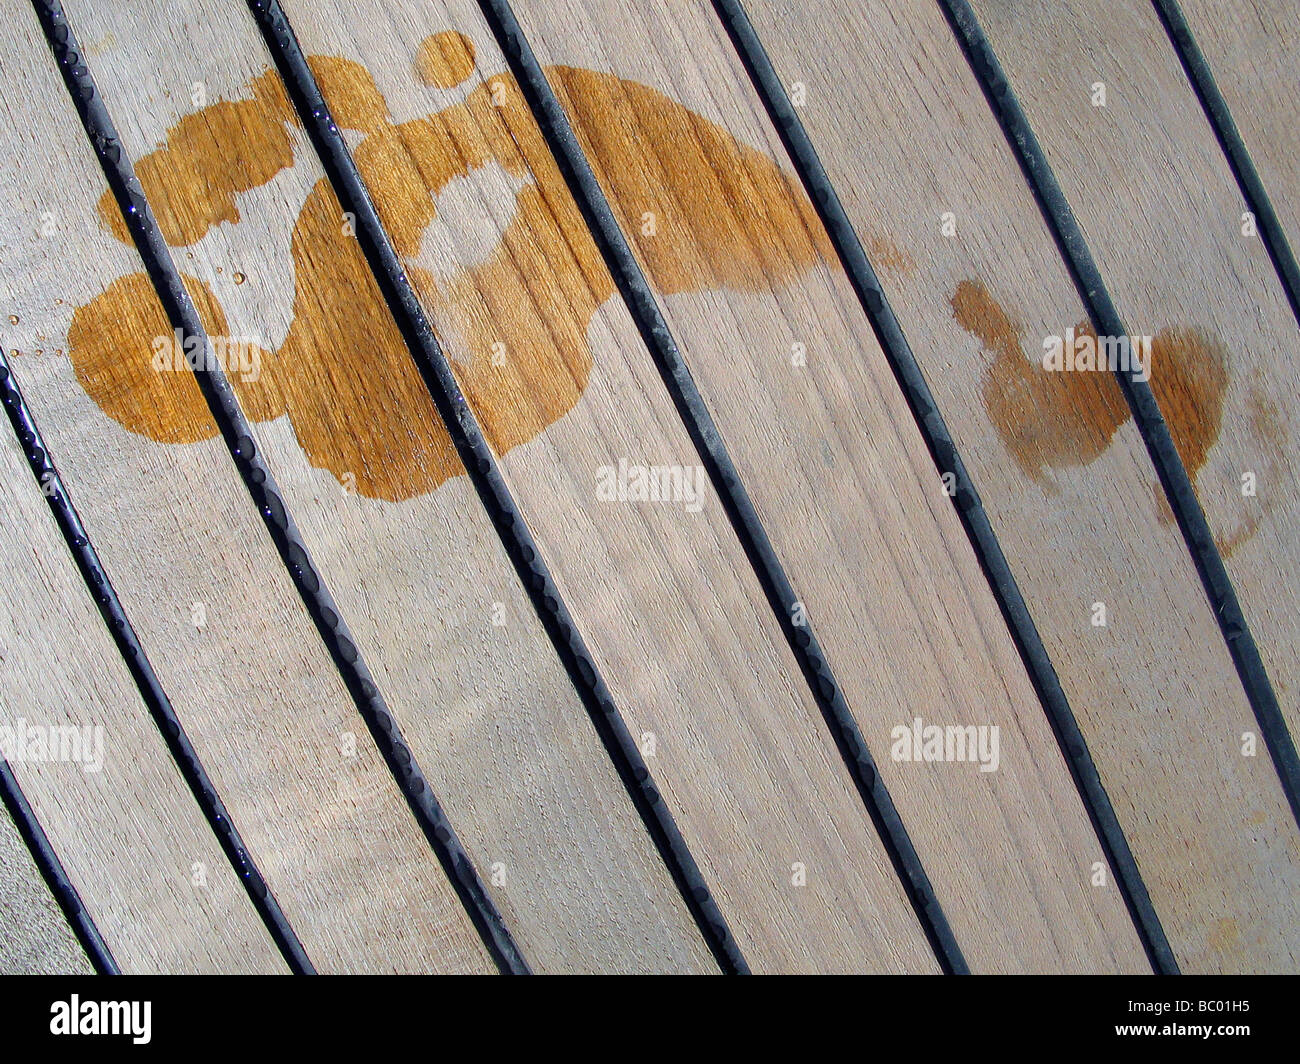 Wet footprint on the teak deck of a yacht. - Stock Image